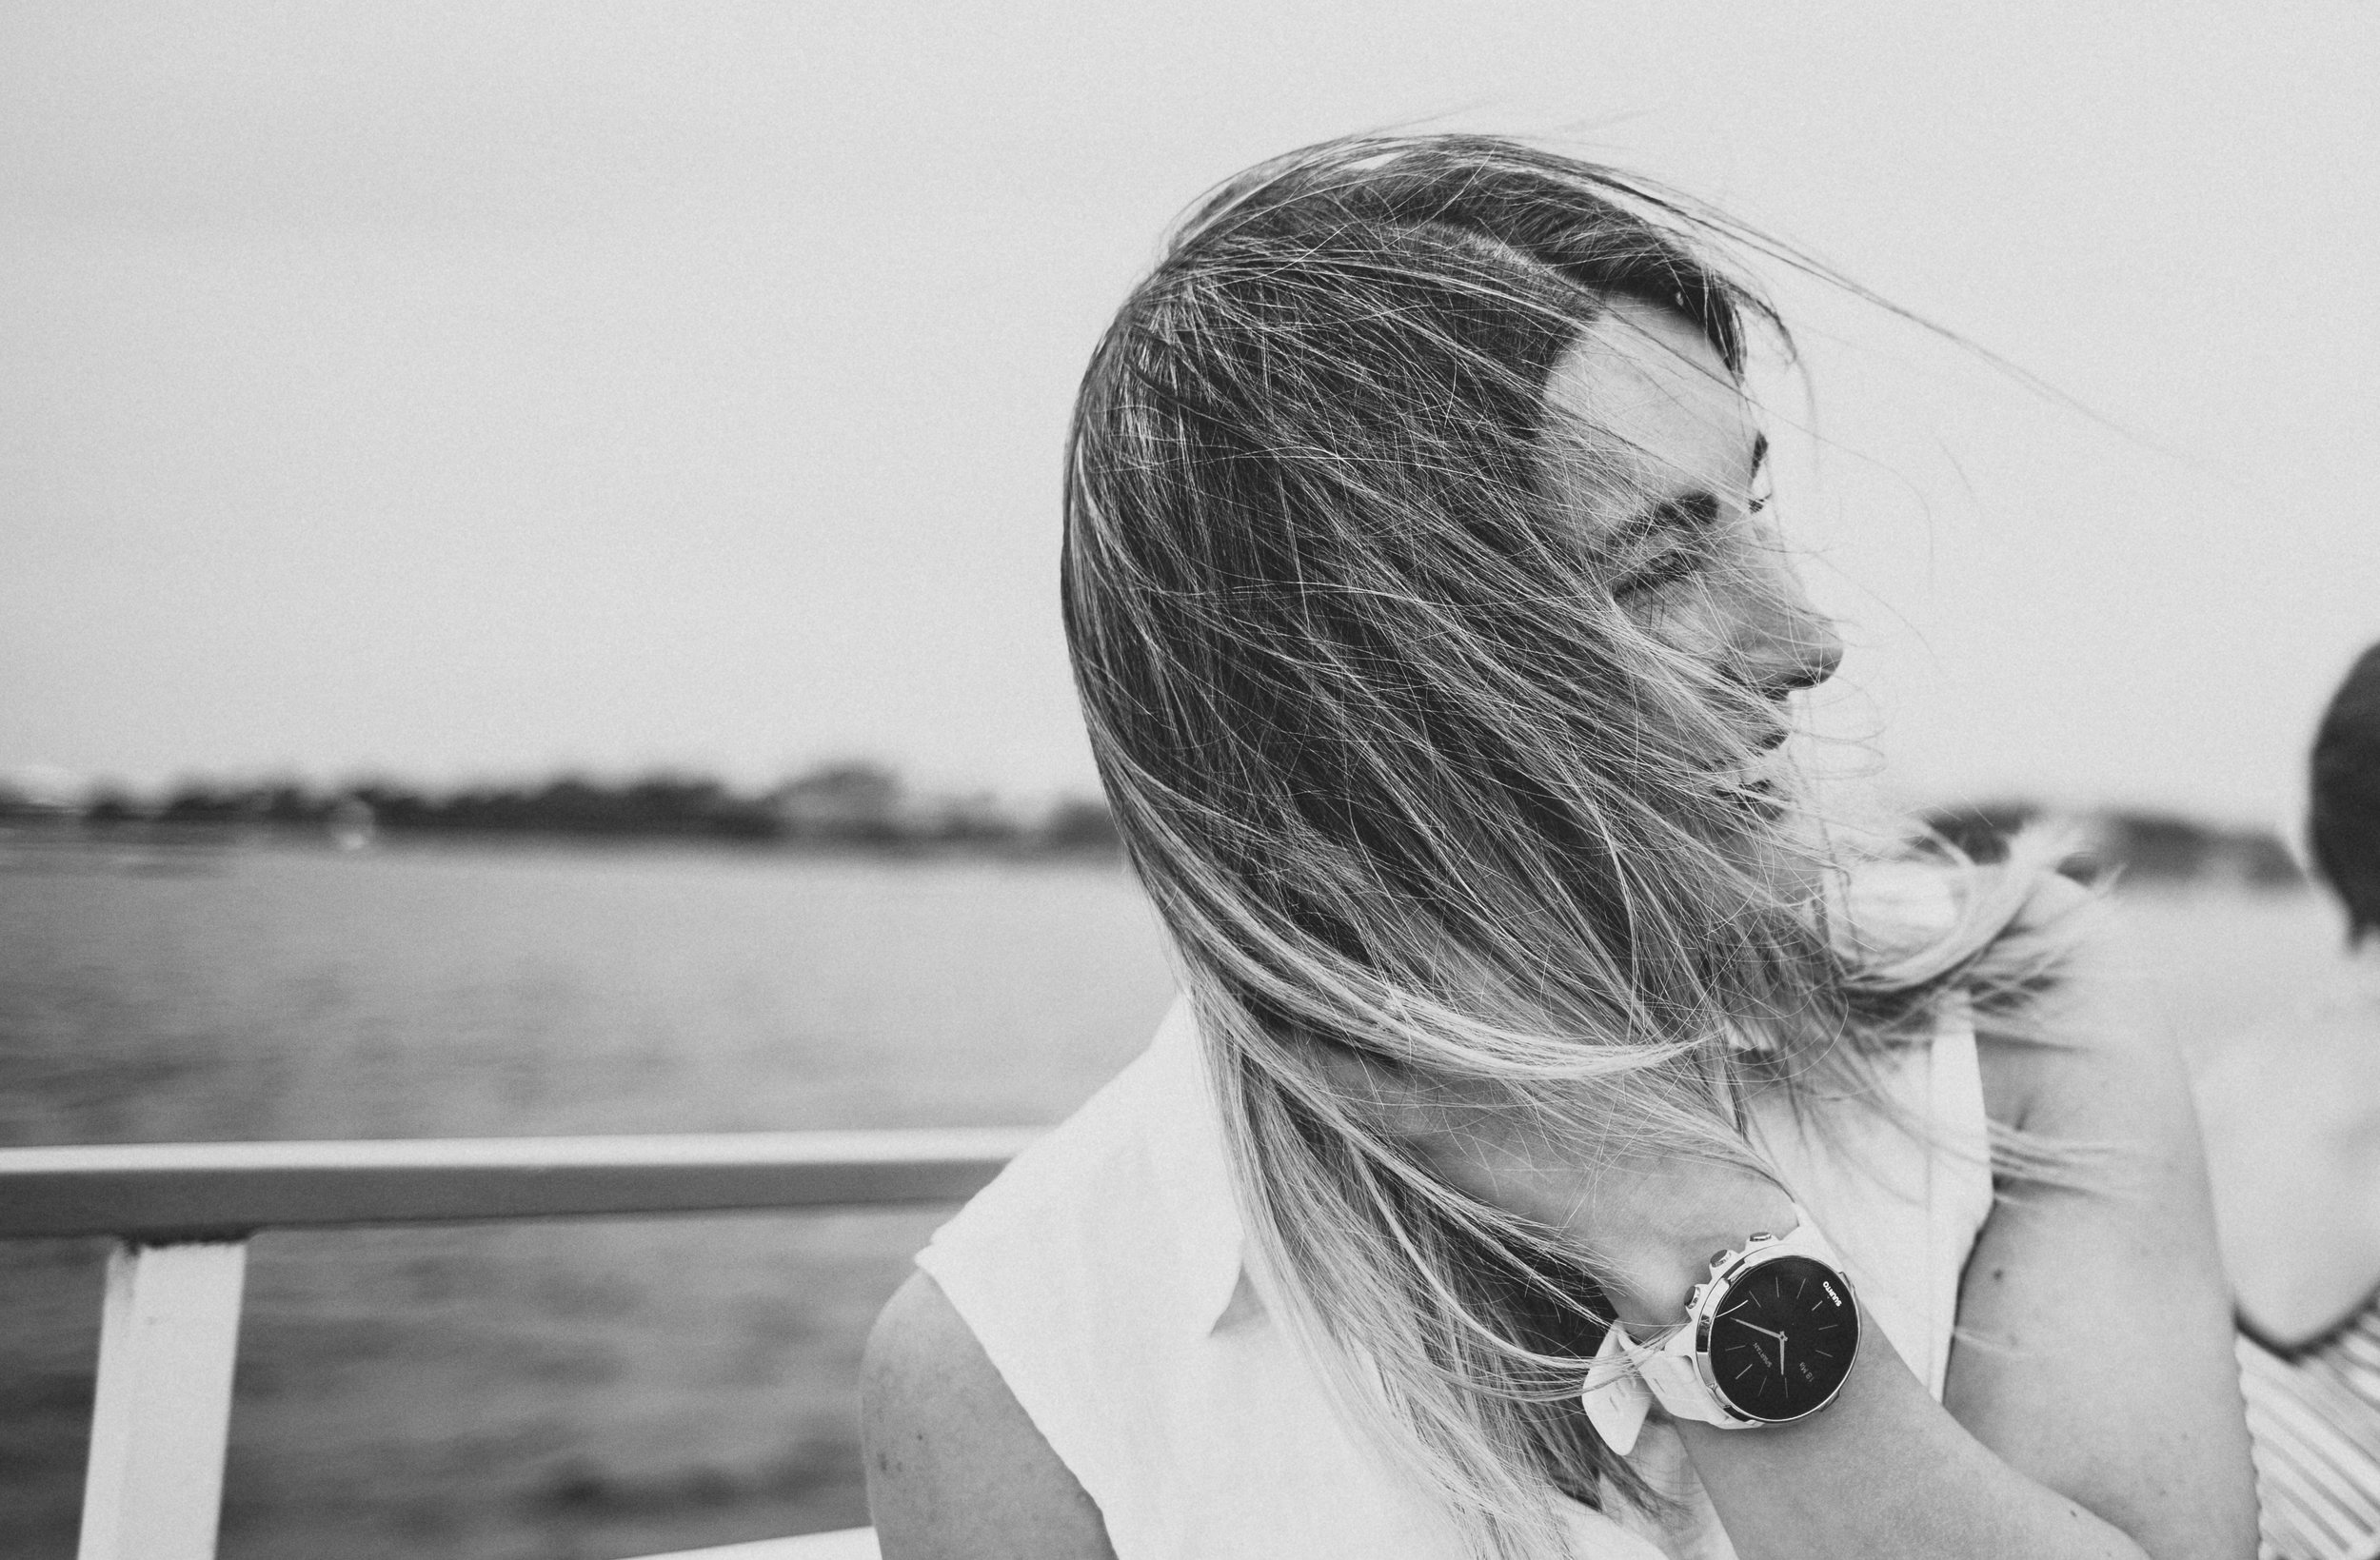 Wind in her hair.